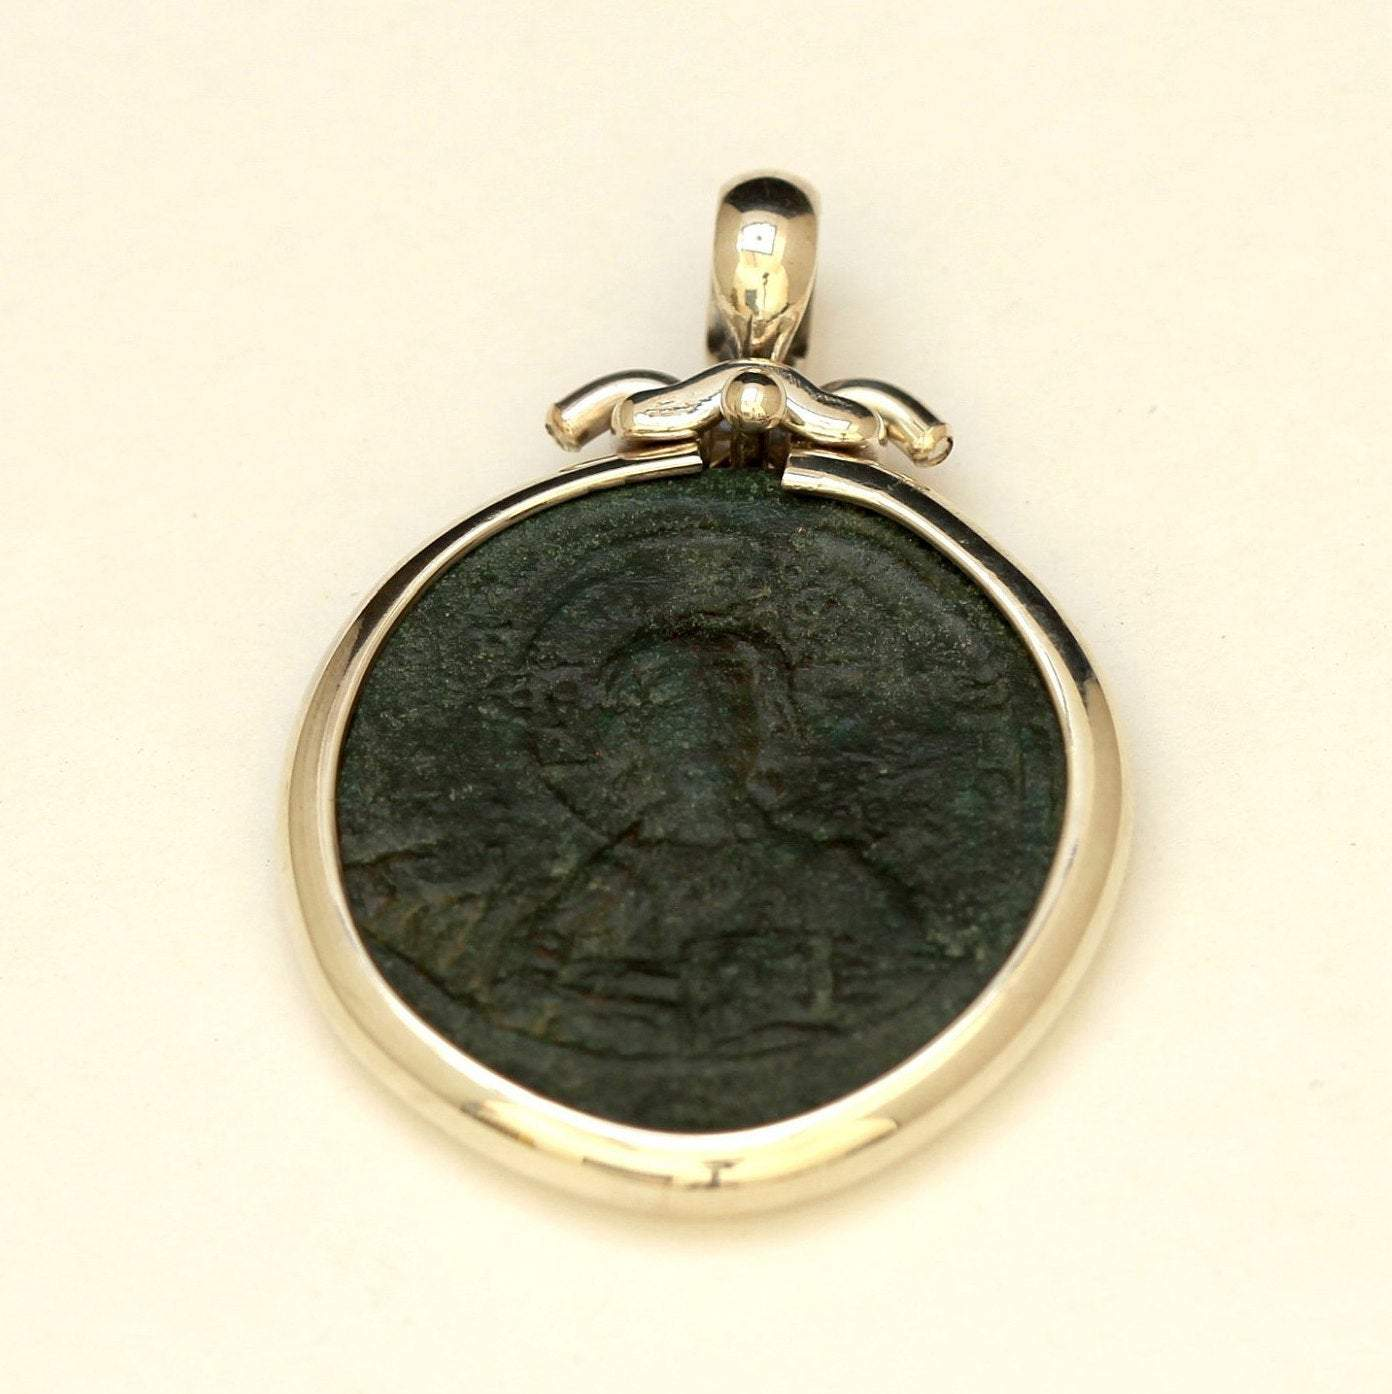 Jesus Christ Pendant, silver setting, Genuine Byzantine Coin, Anonymous Folles w/Cert 6418 - Erez Ancient Coin Jewelry